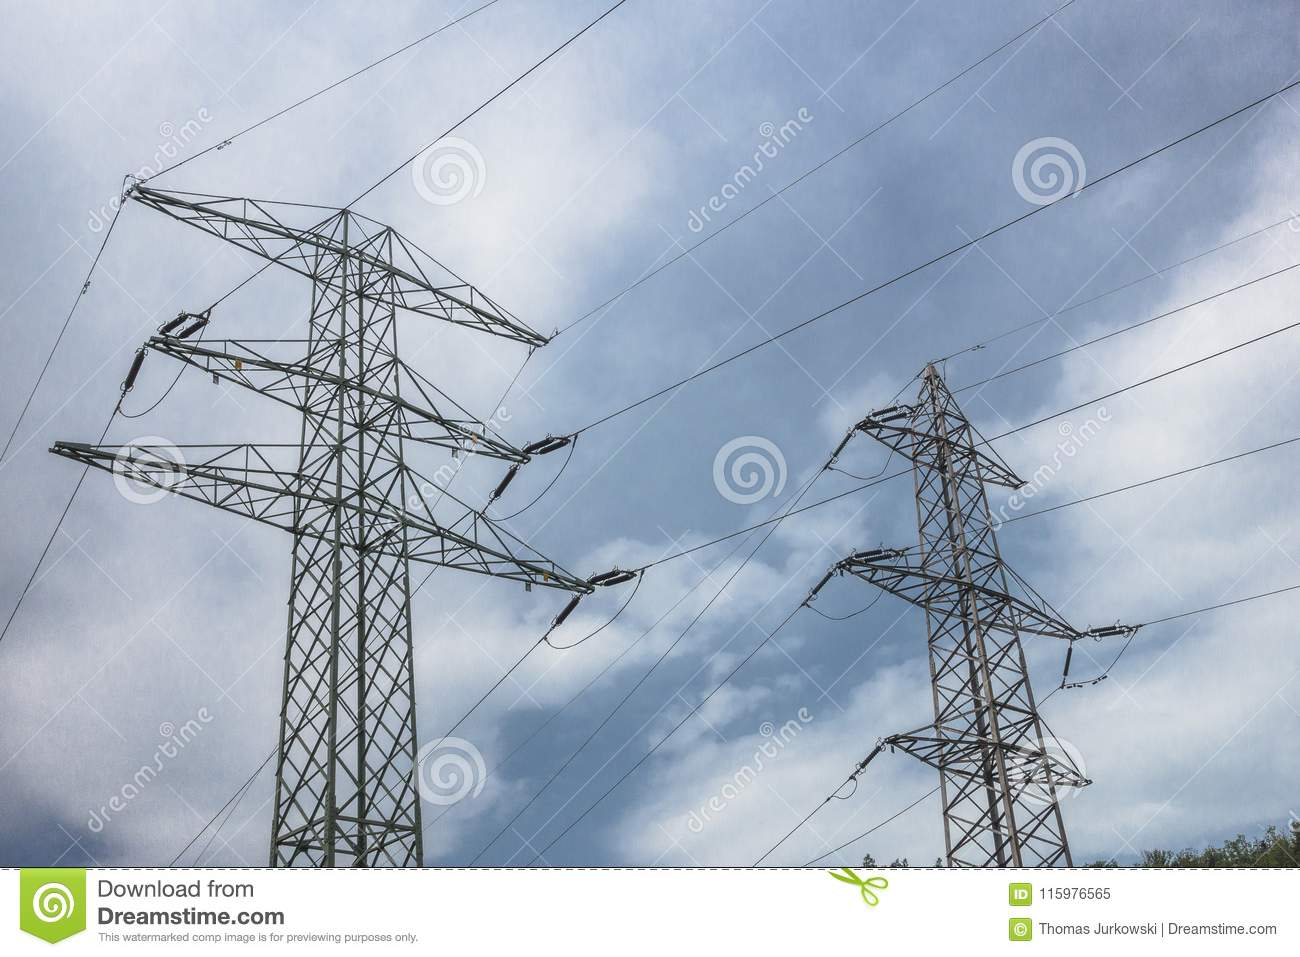 High-voltage power lines